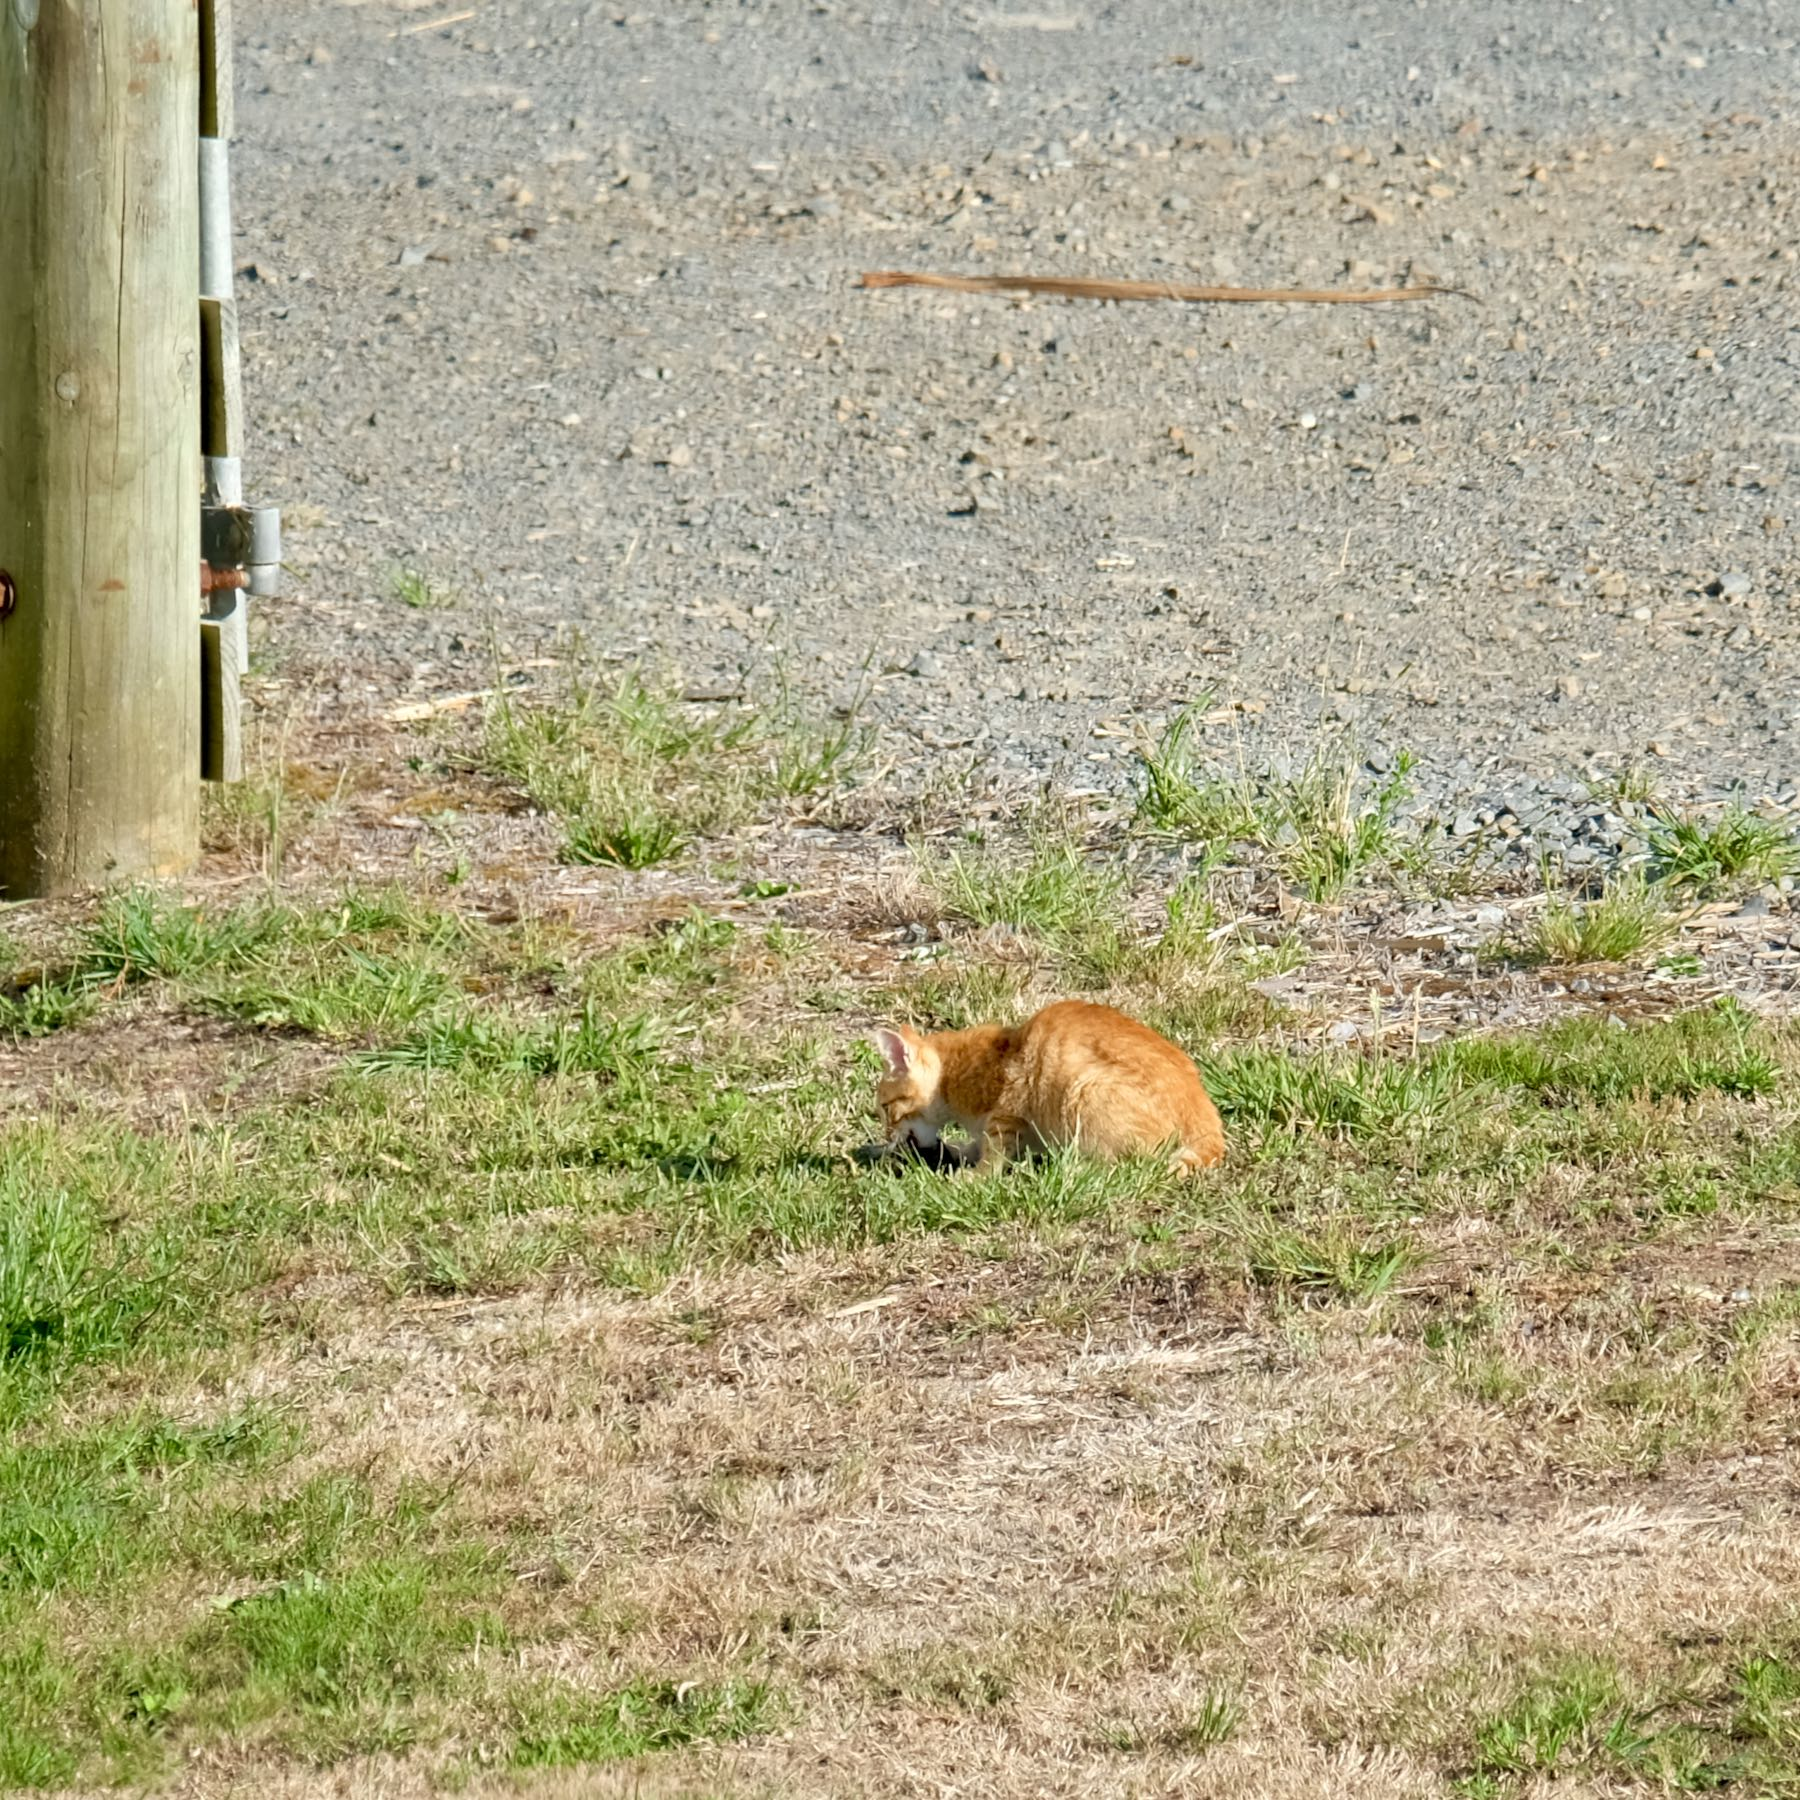 Stray ginger cat - with caught rabbit.